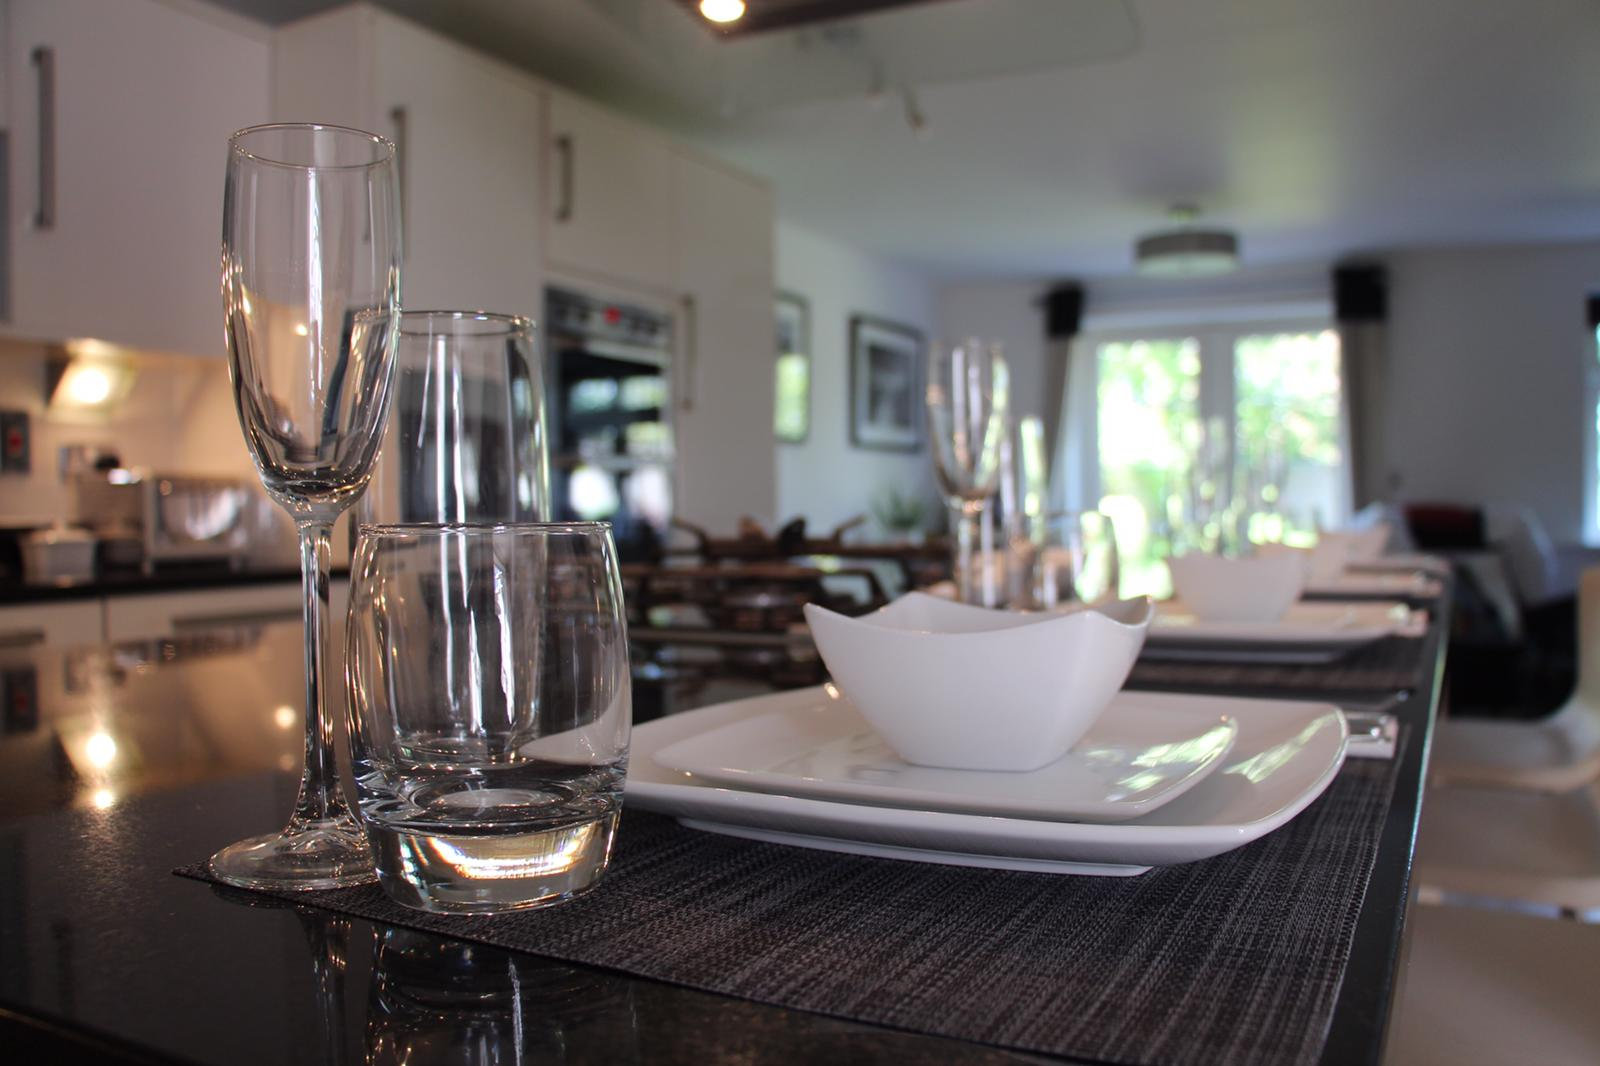 Cooking Experience - Watford